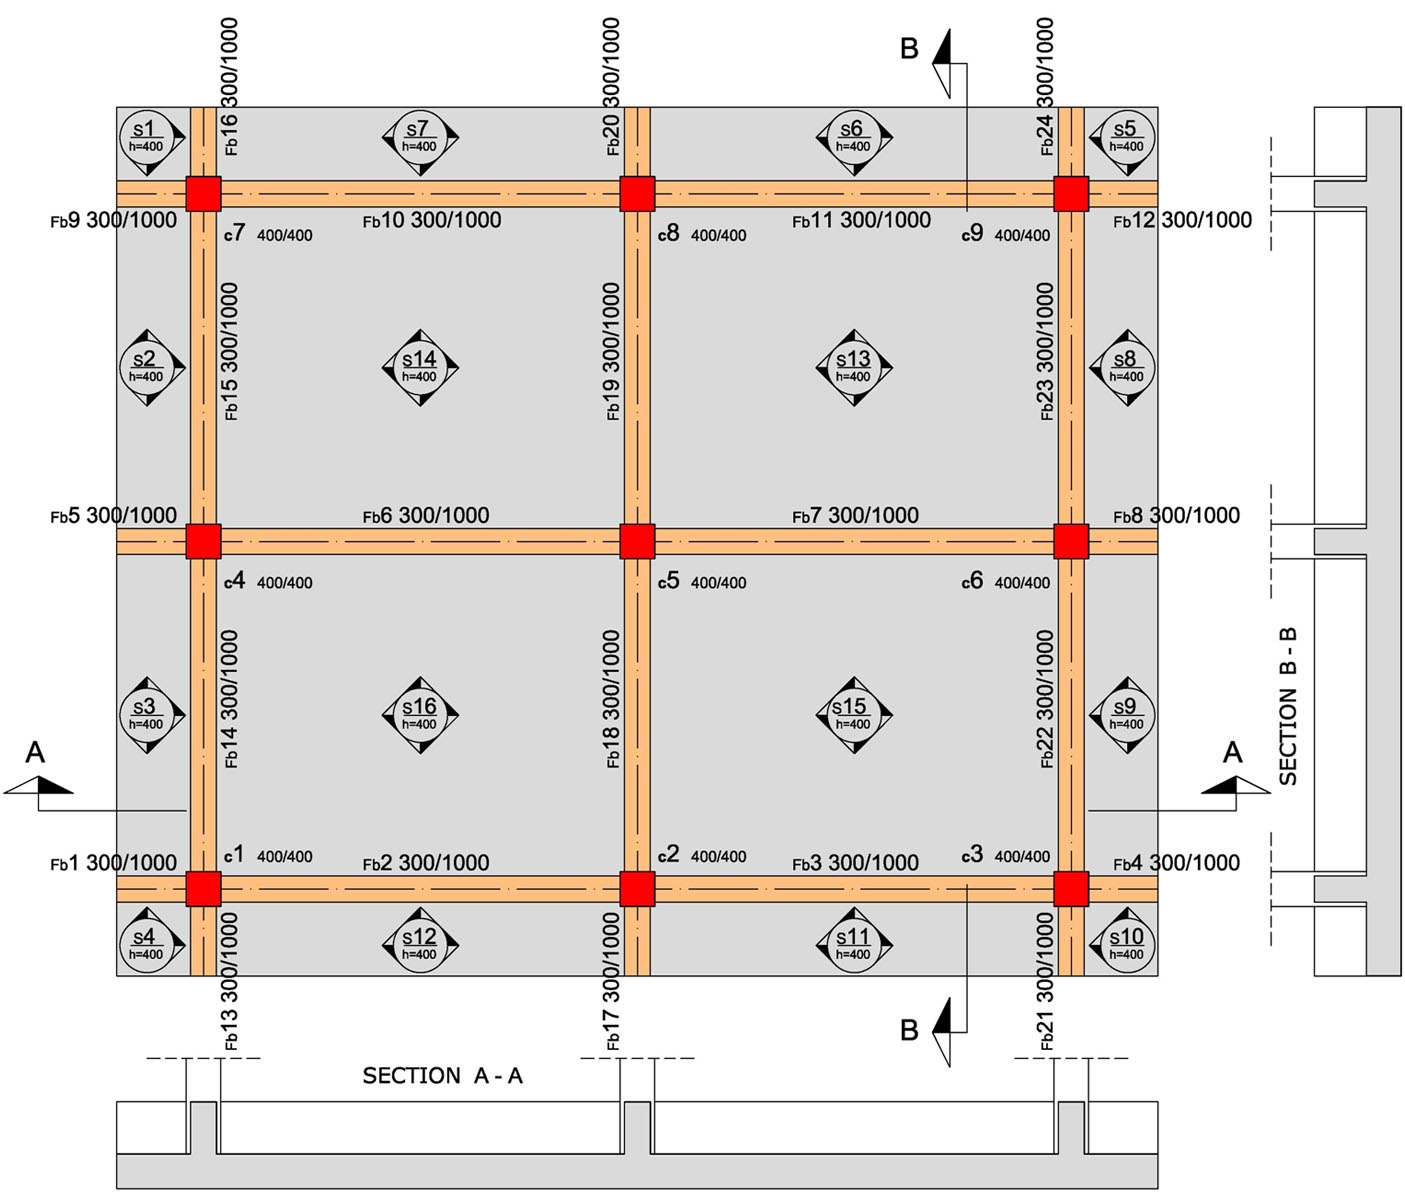 In Ground House Plans Raft Foundation Engineering Feed